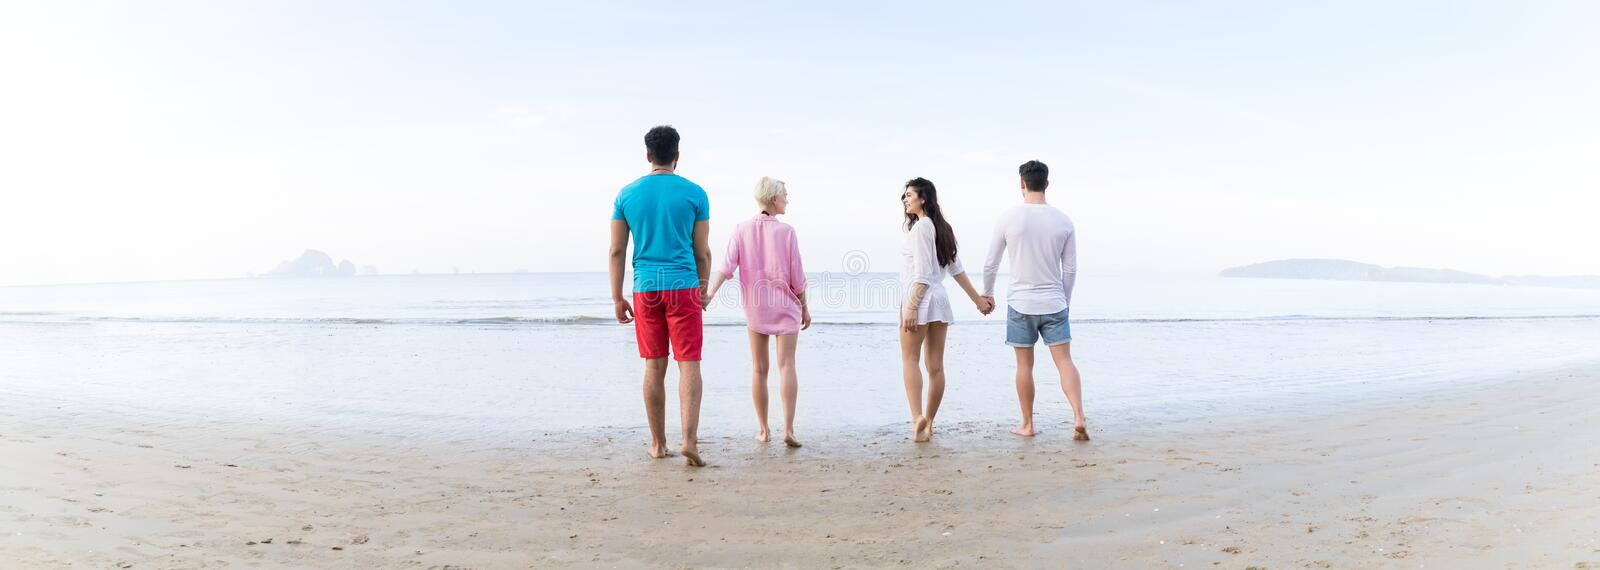 Young People Group On Beach Summer Vacation, Friends Walking Seaside Back Rear View stock photo